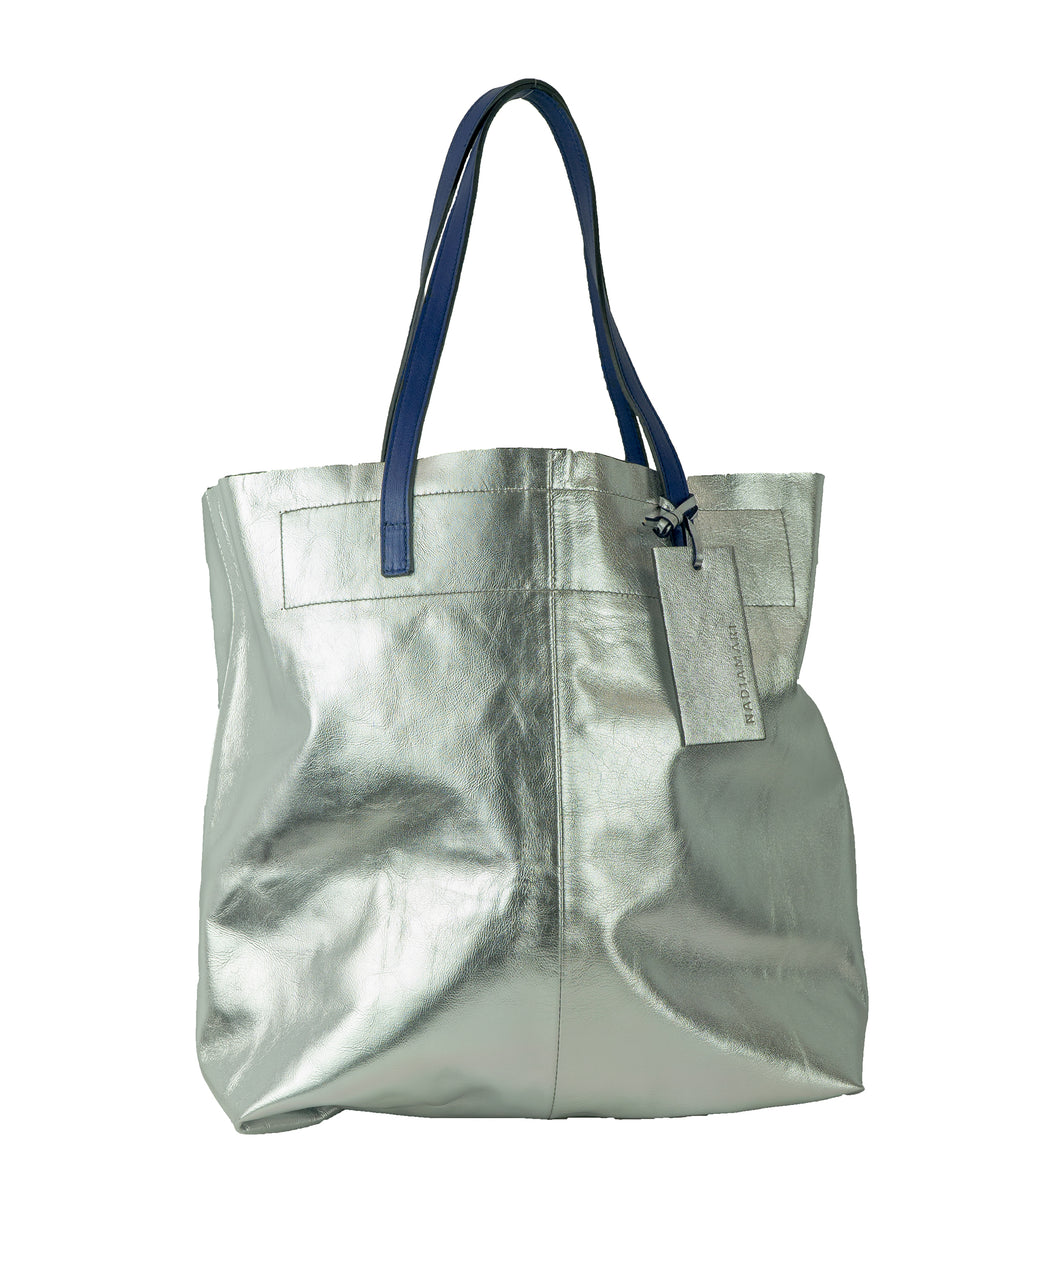 NM BAG02 SILVER - Shopper Media